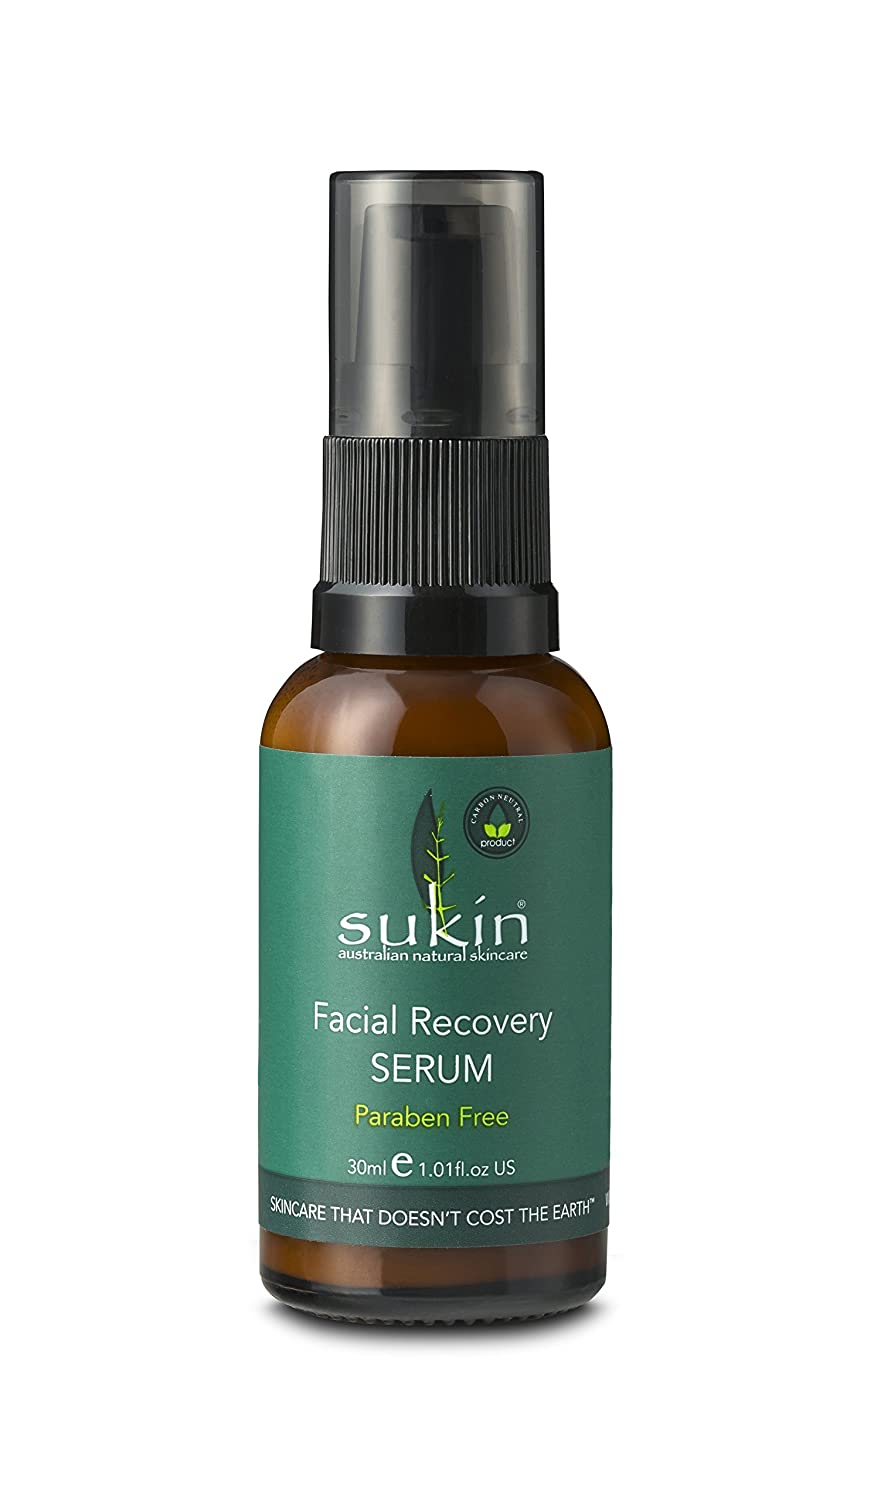 Sukin Super Greens Facial Recovery Serum 30ml/1.01oz SDEFO